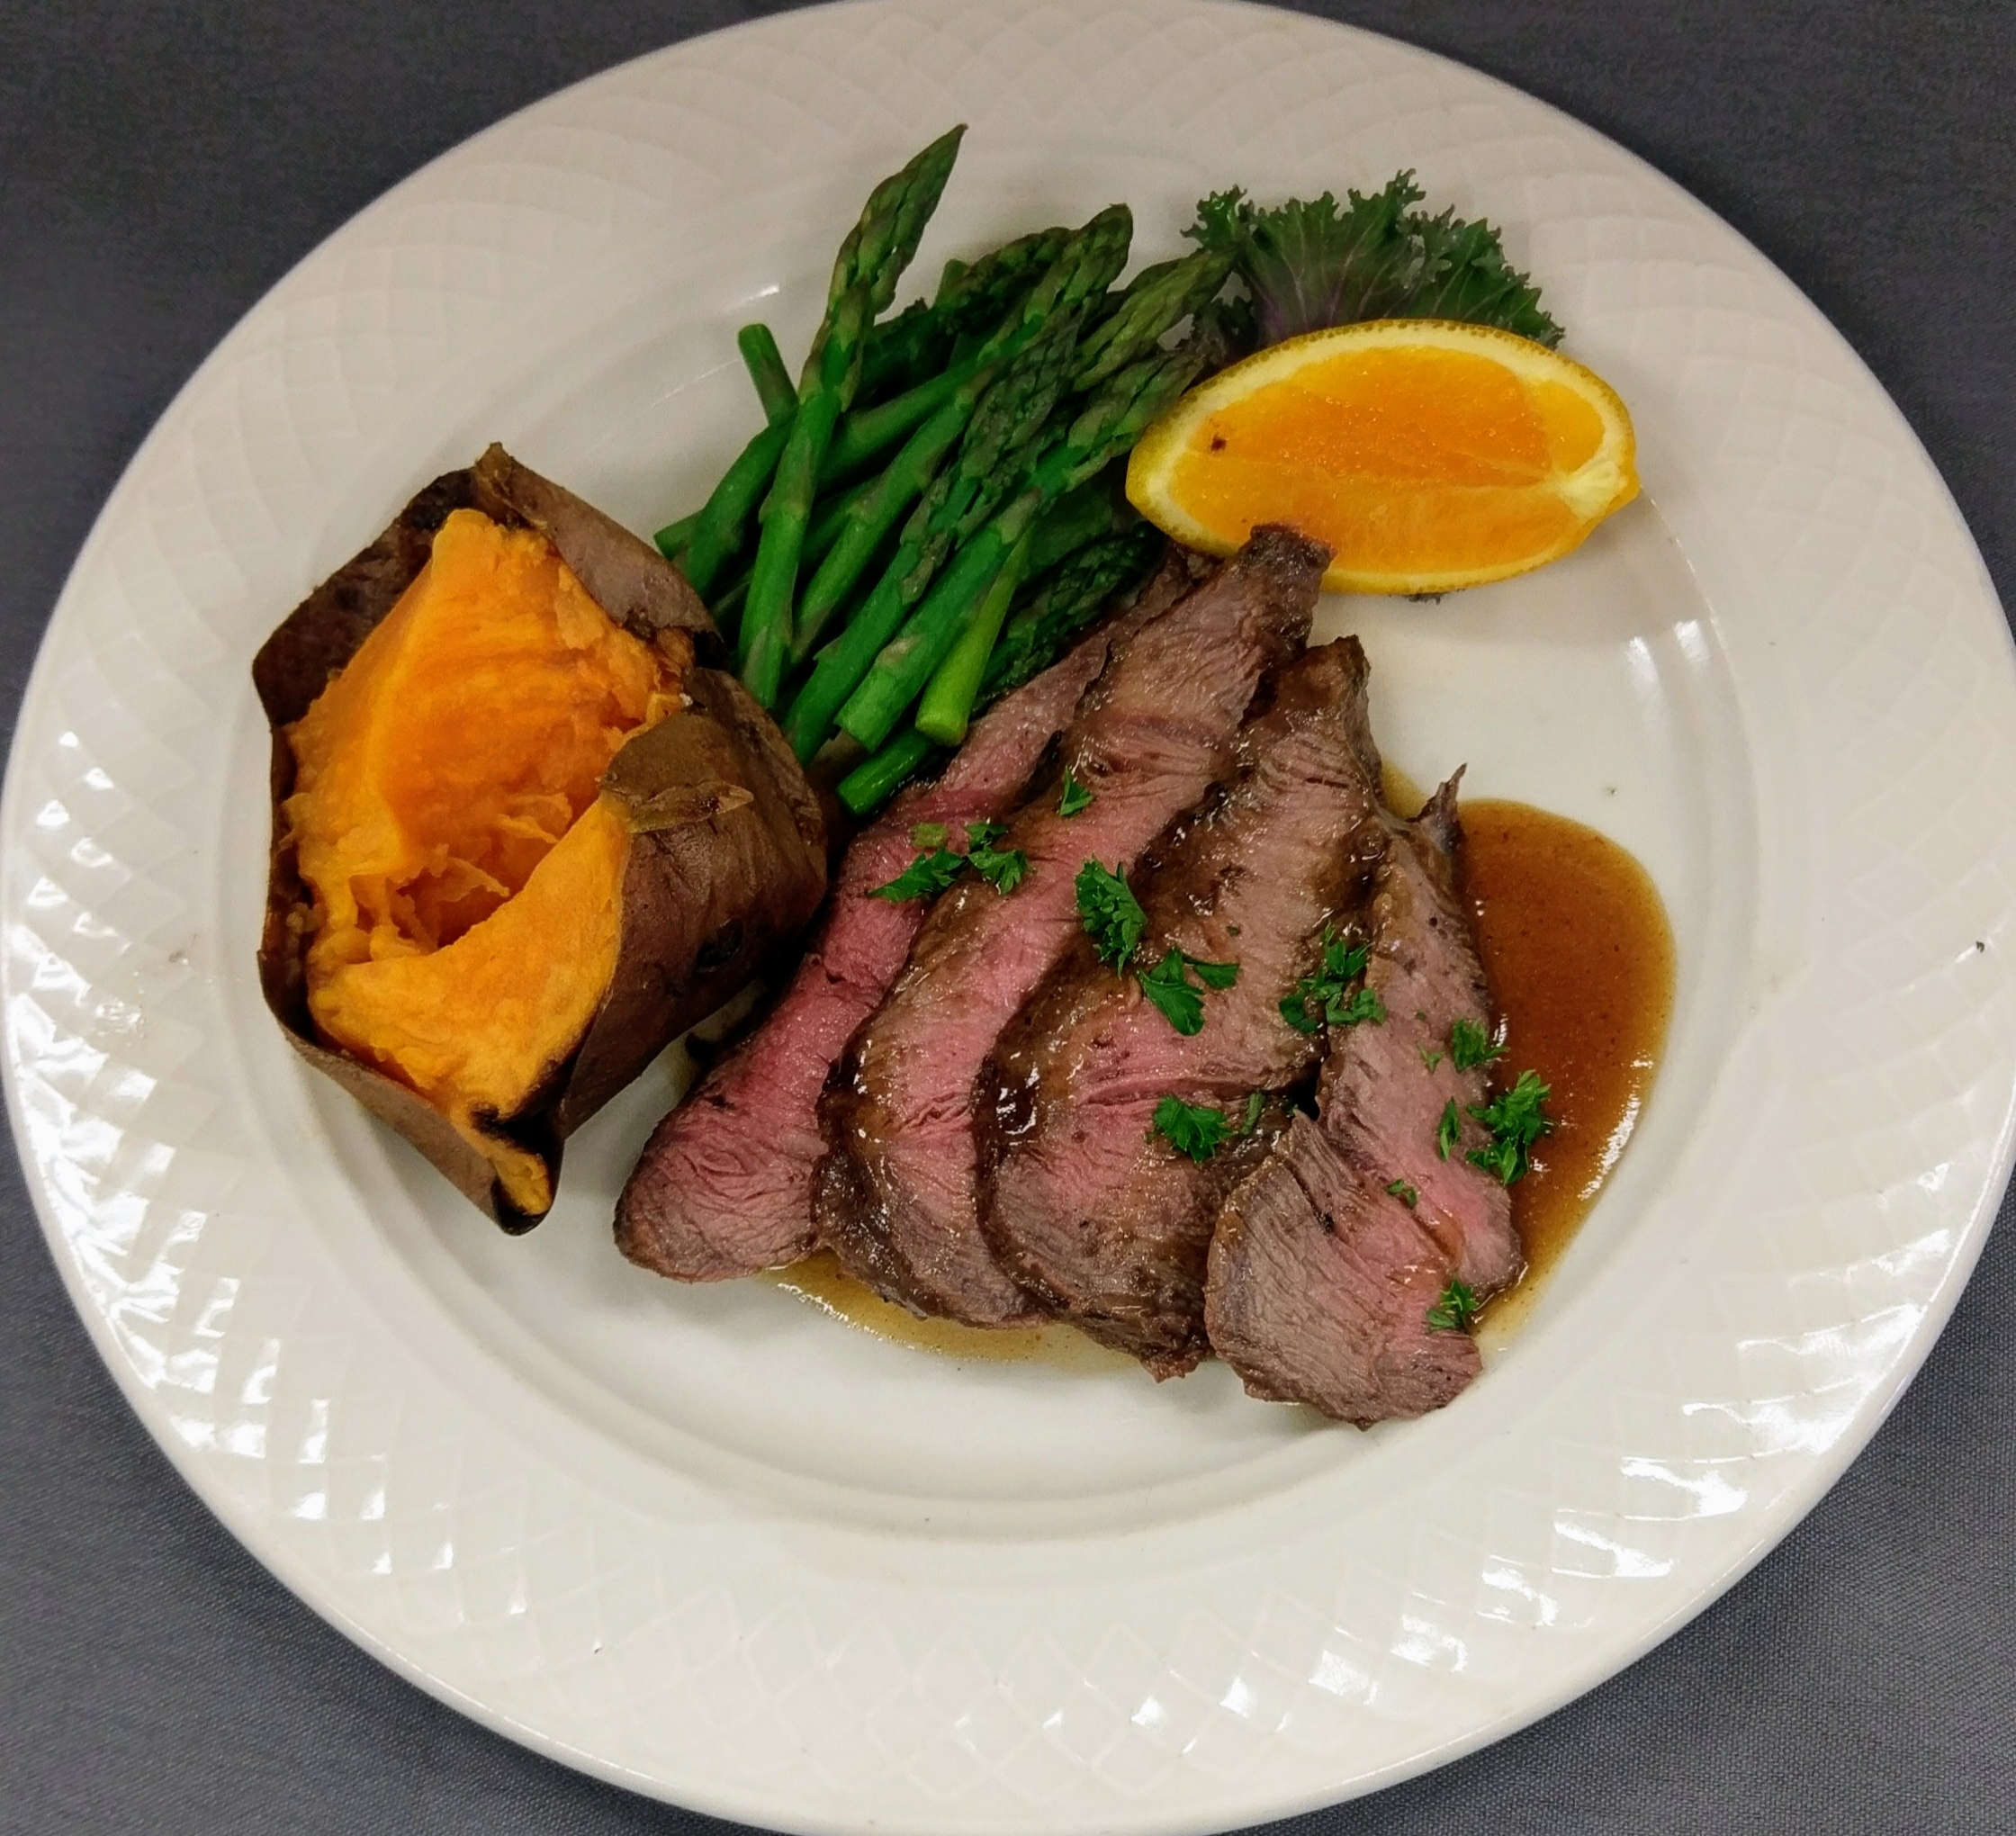 Grilled flat iron steak, gluten-free dish